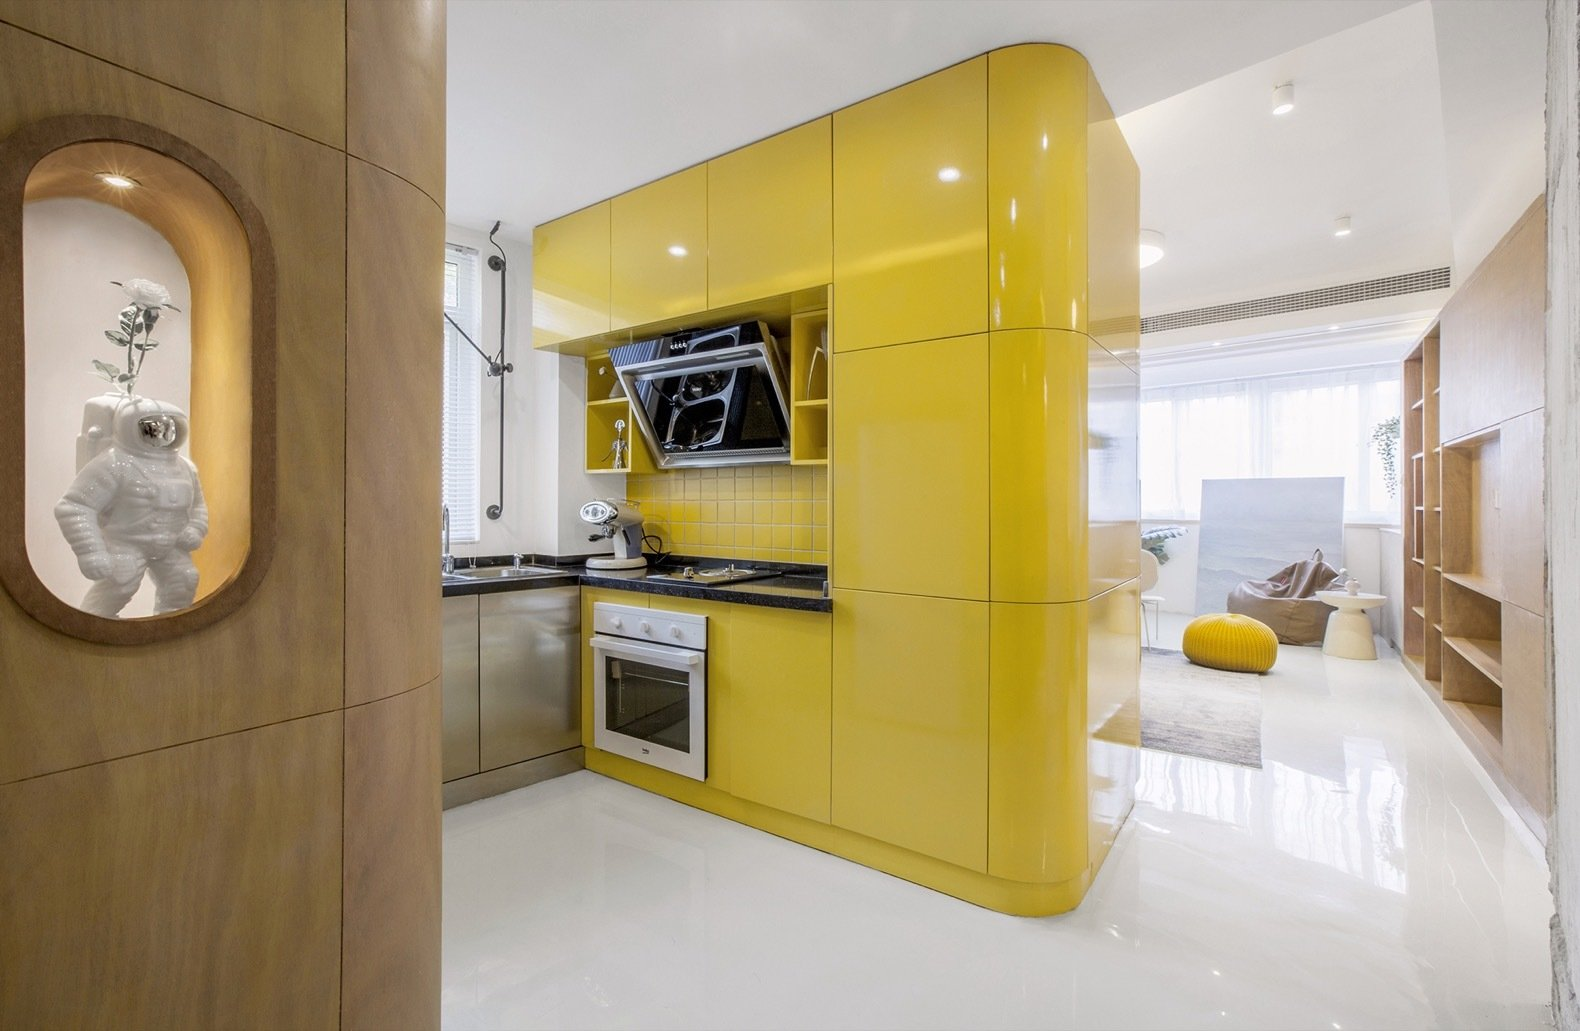 Kitchen, Colorful, Cooktops, Microwave, Stone, Porcelain Tile, Drop In, Ceiling, Wall Oven, Concrete, and Metal The centrally located kitchen volume is faced with high-gloss lacquered panels and features a yellow tile backsplash with black artificial stone countertops.    Kitchen Stone Porcelain Tile Photos from Rotated Volumes Cleverly Maximize Space in a Tiny Shanghai Apartment